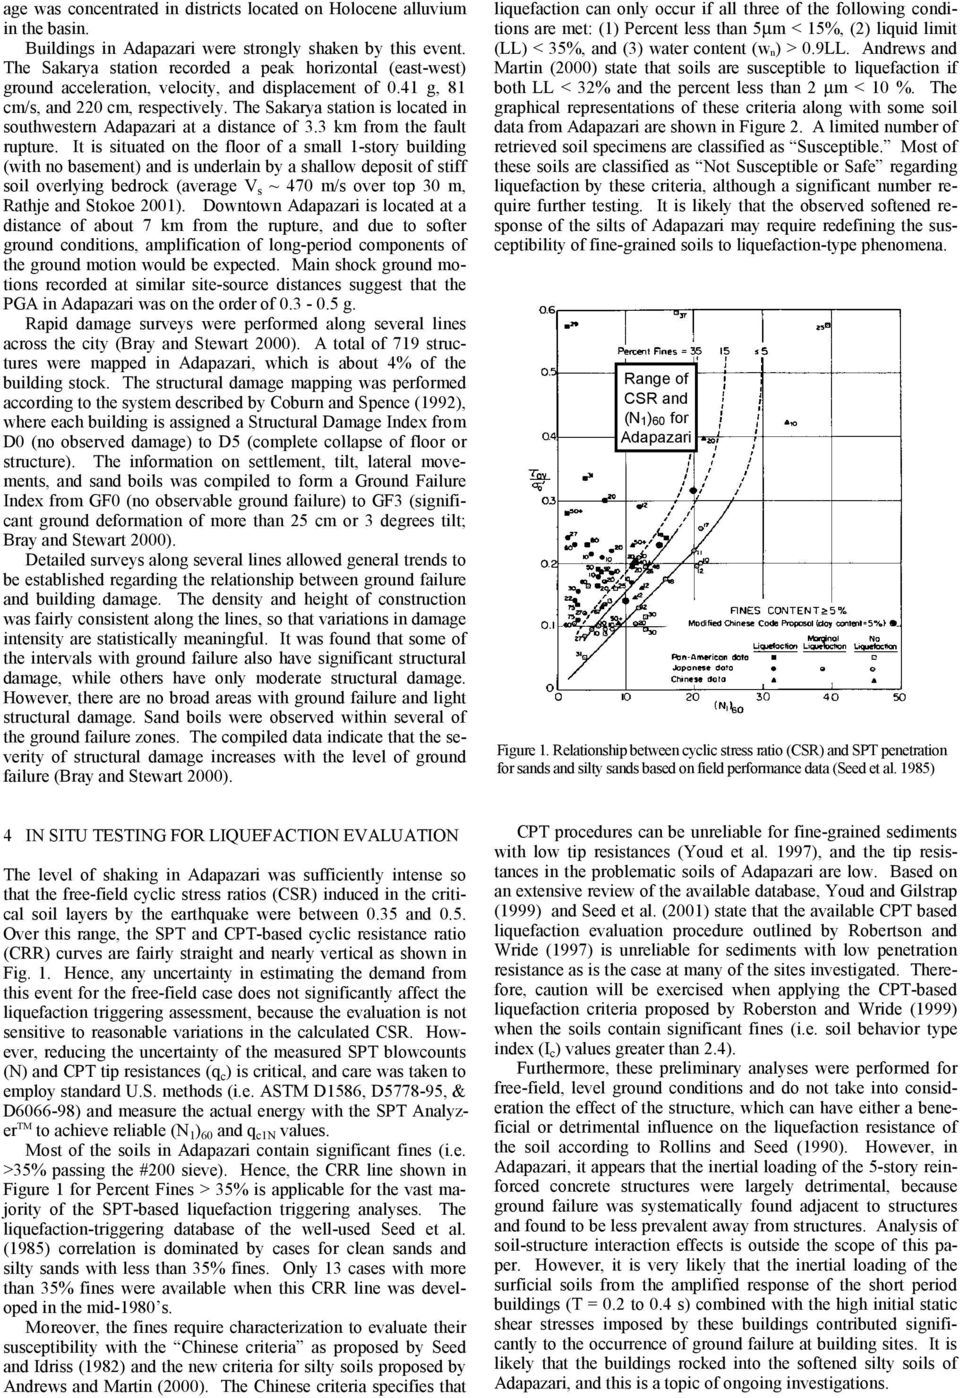 The Sakarya station is located in southwestern Adapazari at a distance of. km from the fault rupture.